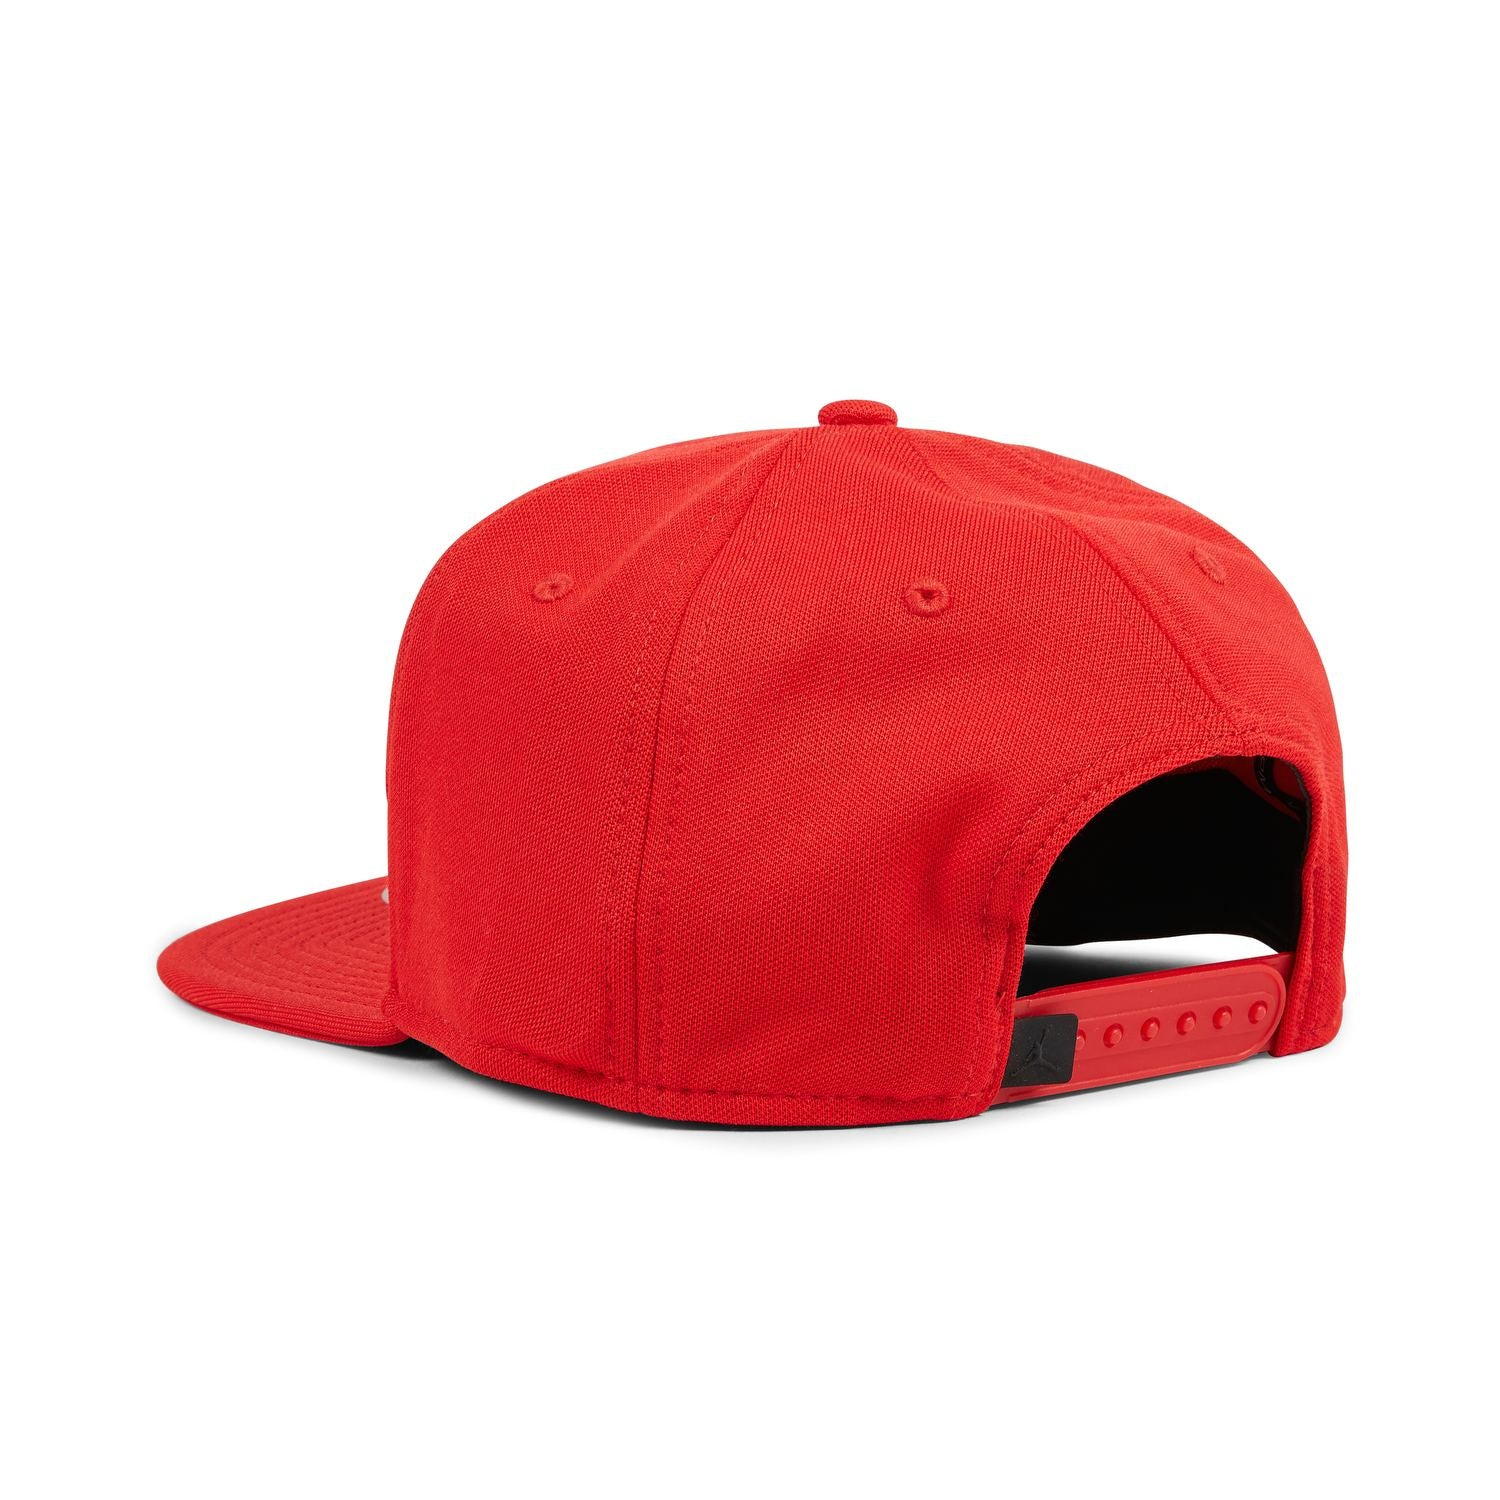 be74d8478b8 Air Jordan Pro Jumpman Snapback Cap (Gym Red / Black) – Trilogy Merch PH